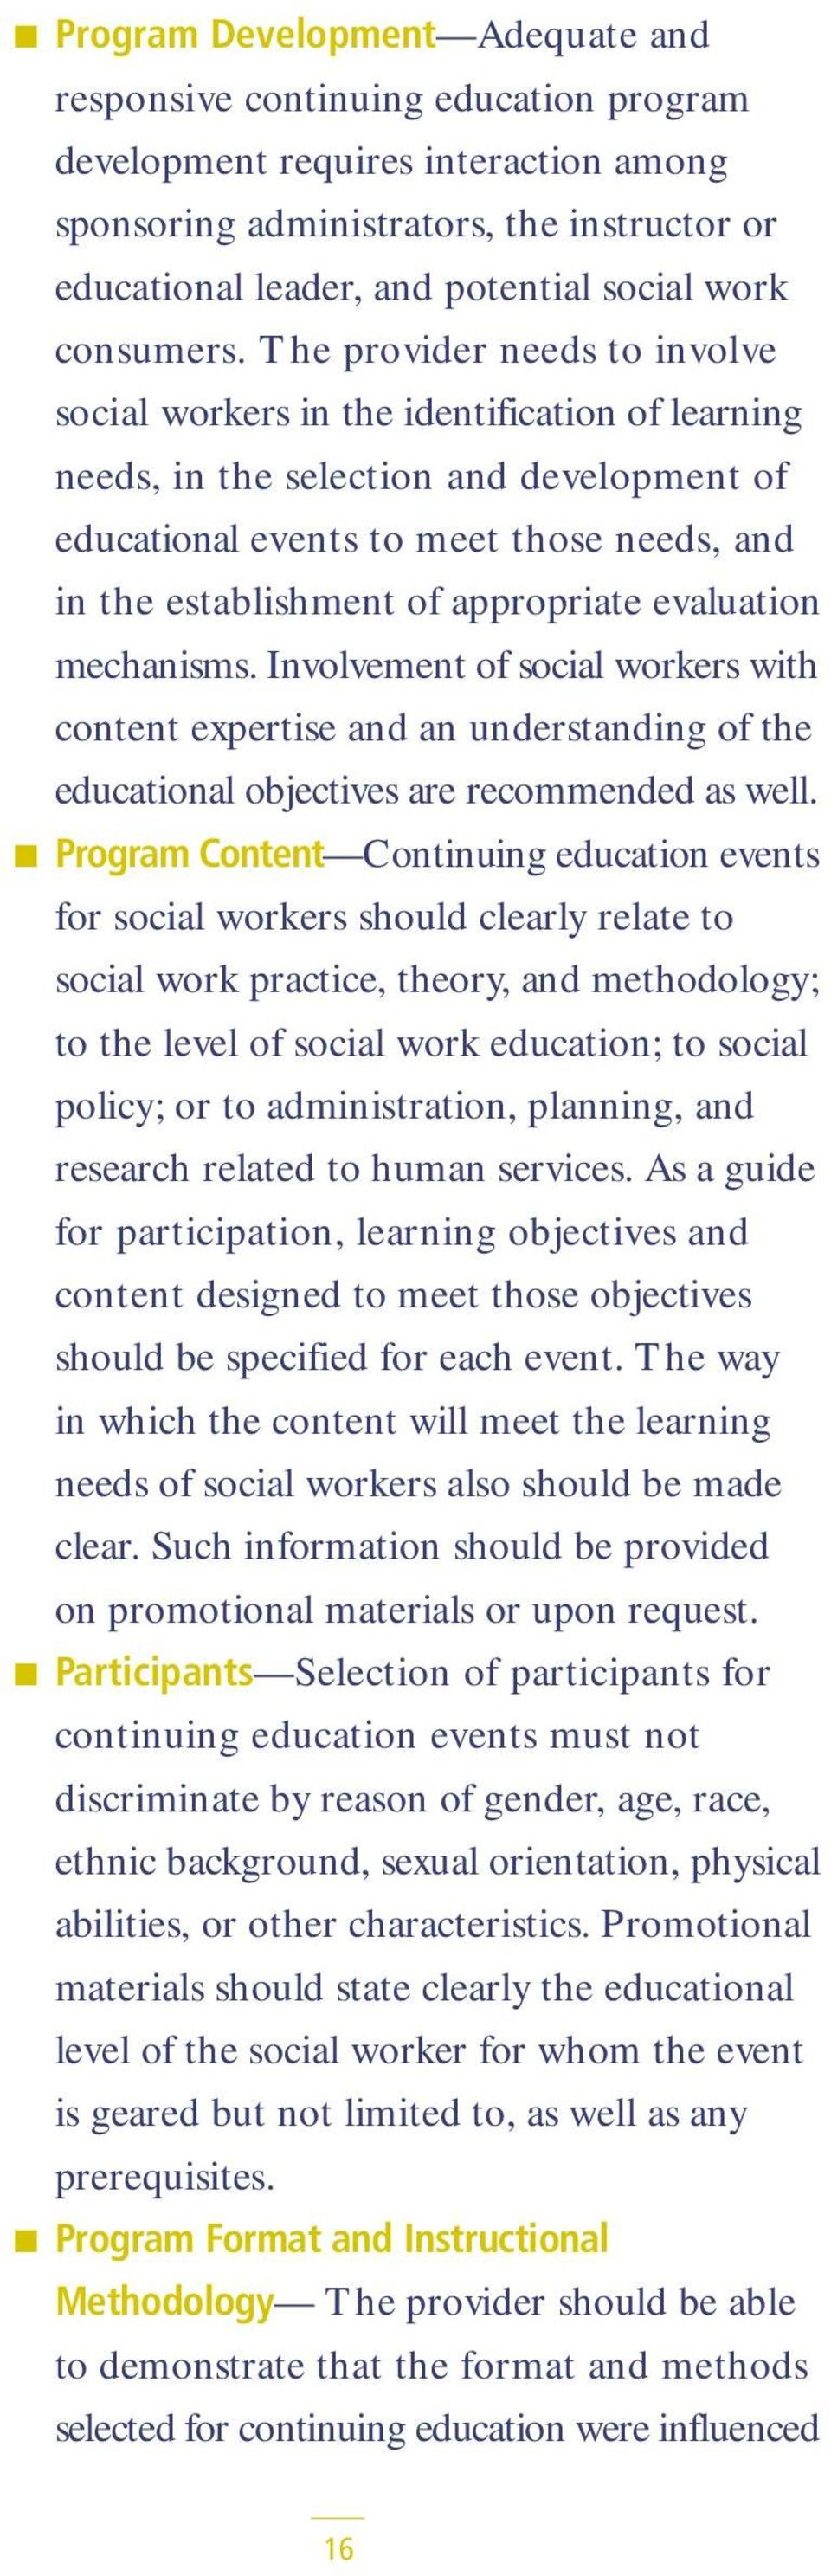 The provider needs to involve social workers in the identification of learning needs, in the selection and development of educational events to meet those needs, and in the establishment of